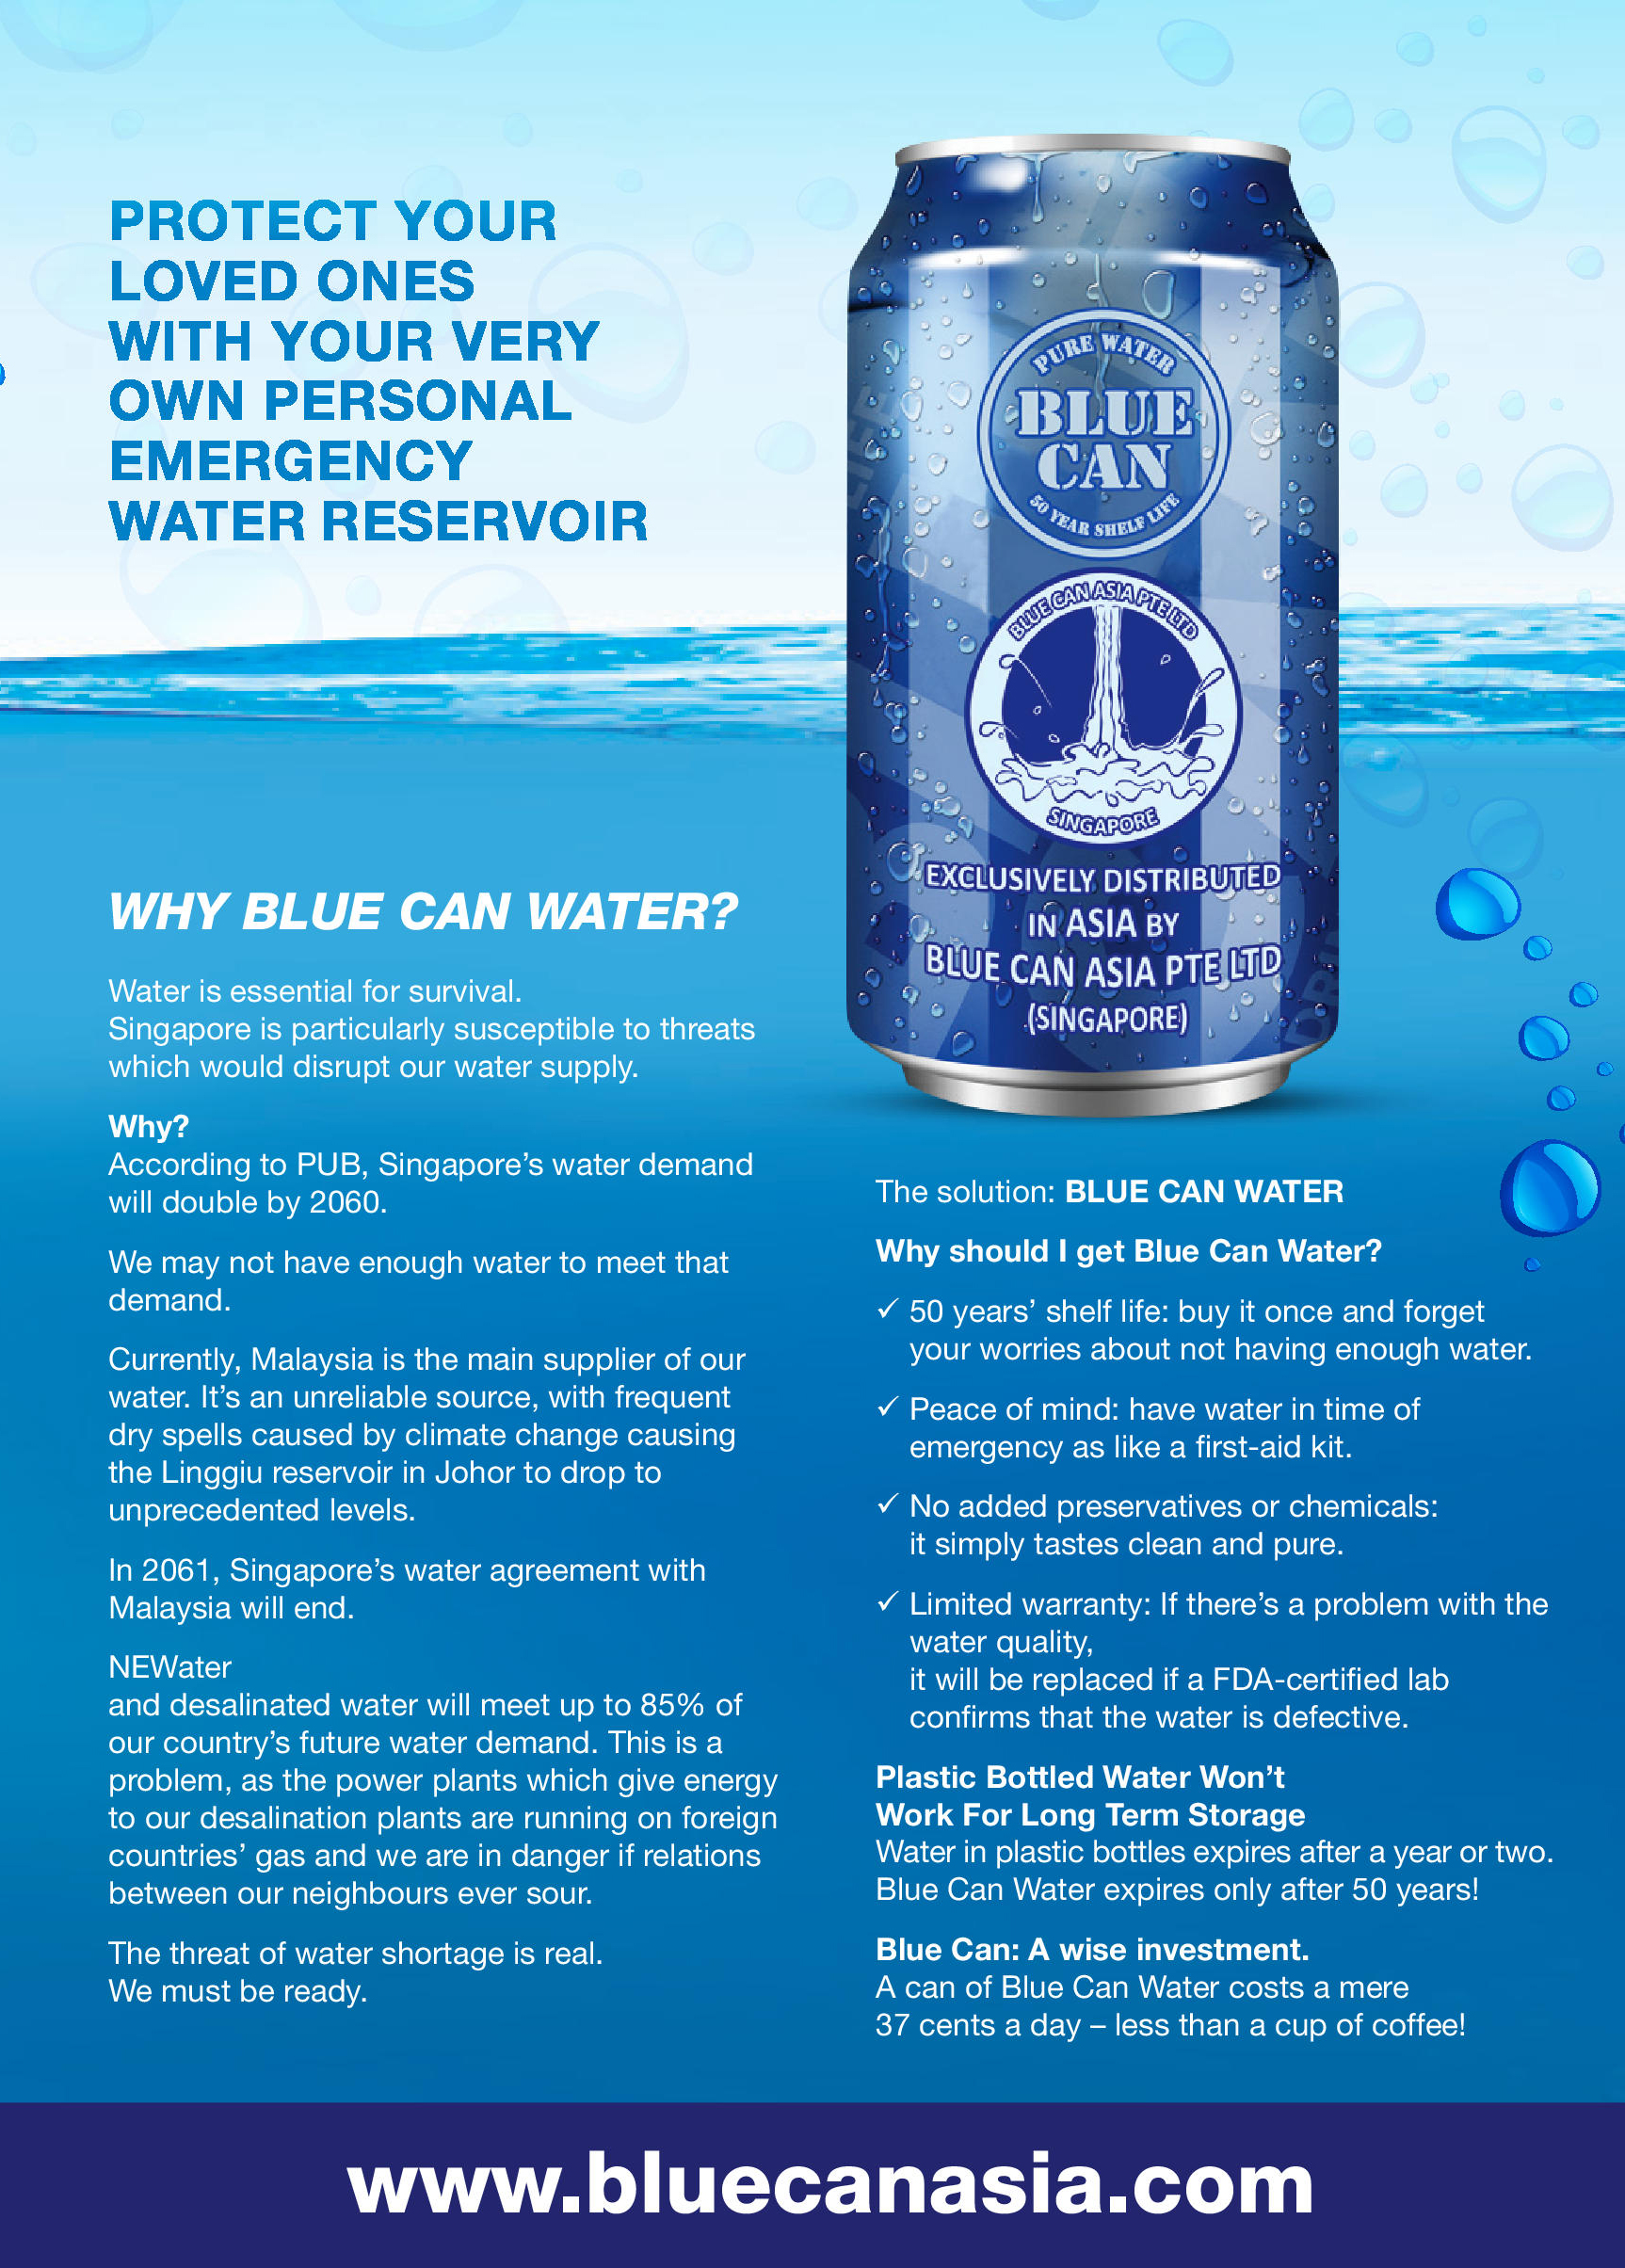 Blue Can Asia Pte Ltd